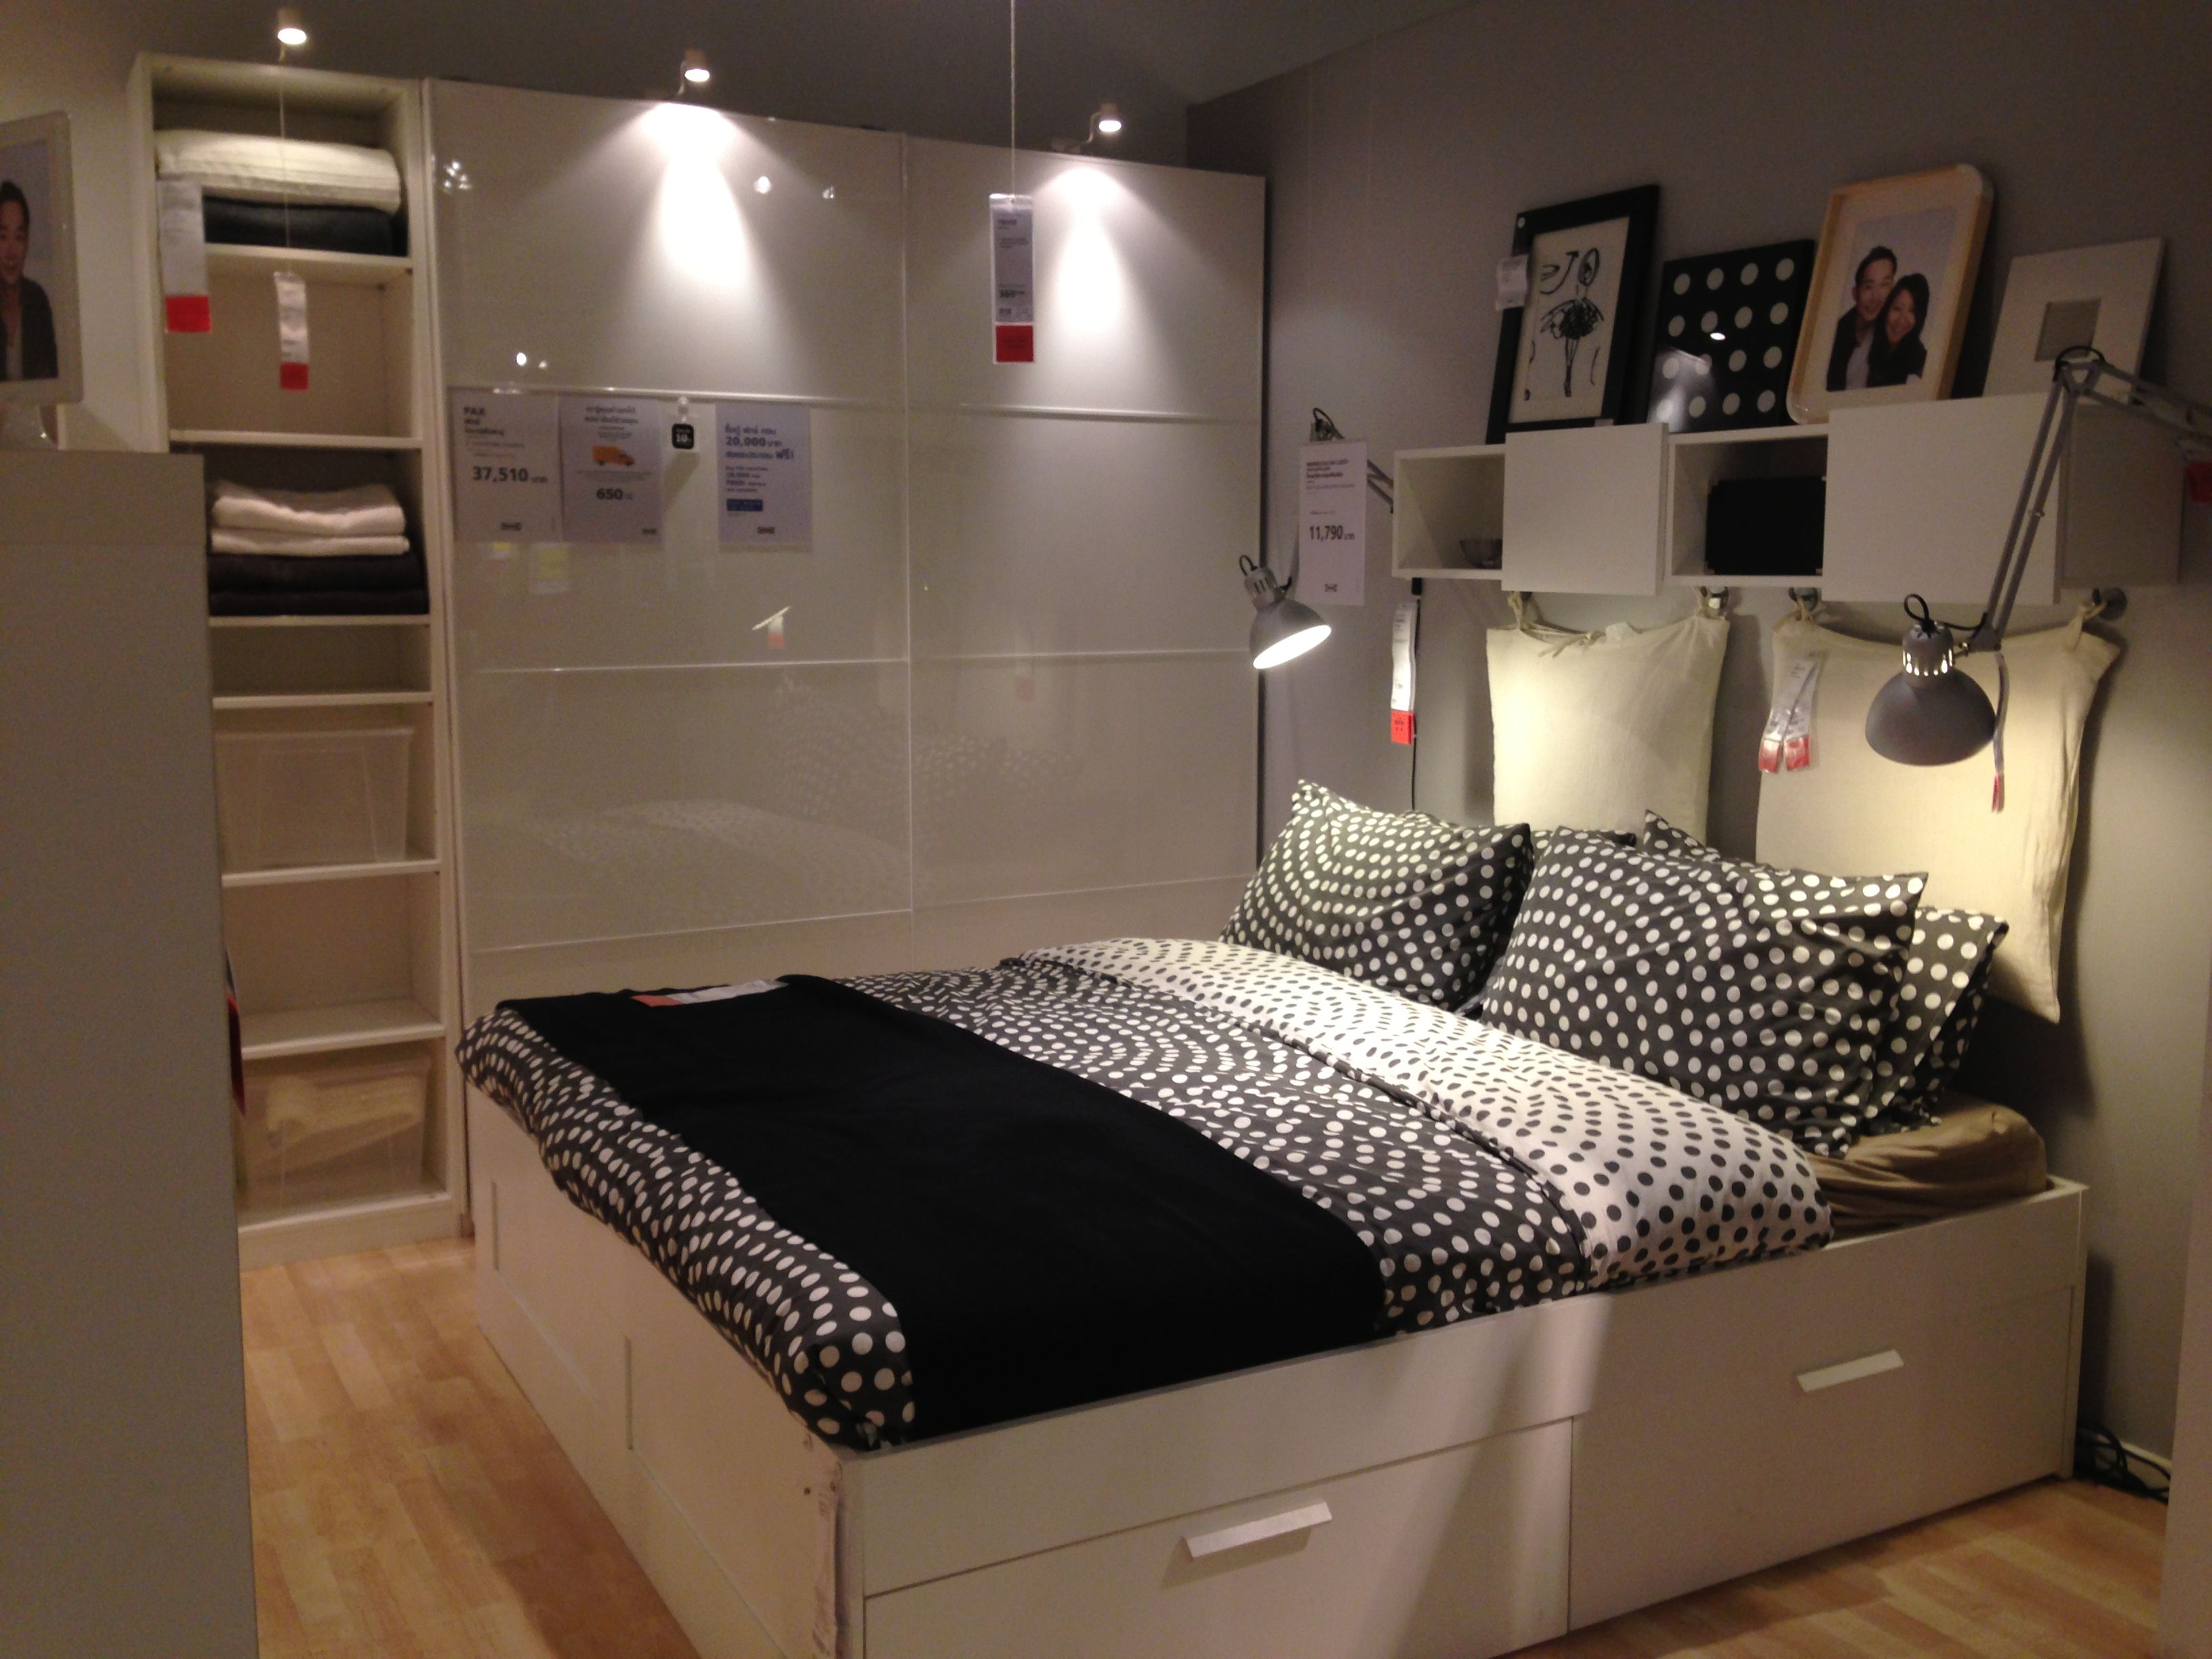 Showroom Bedroom At Ikea Ikea Showroom Ikea Bedroom Ikea